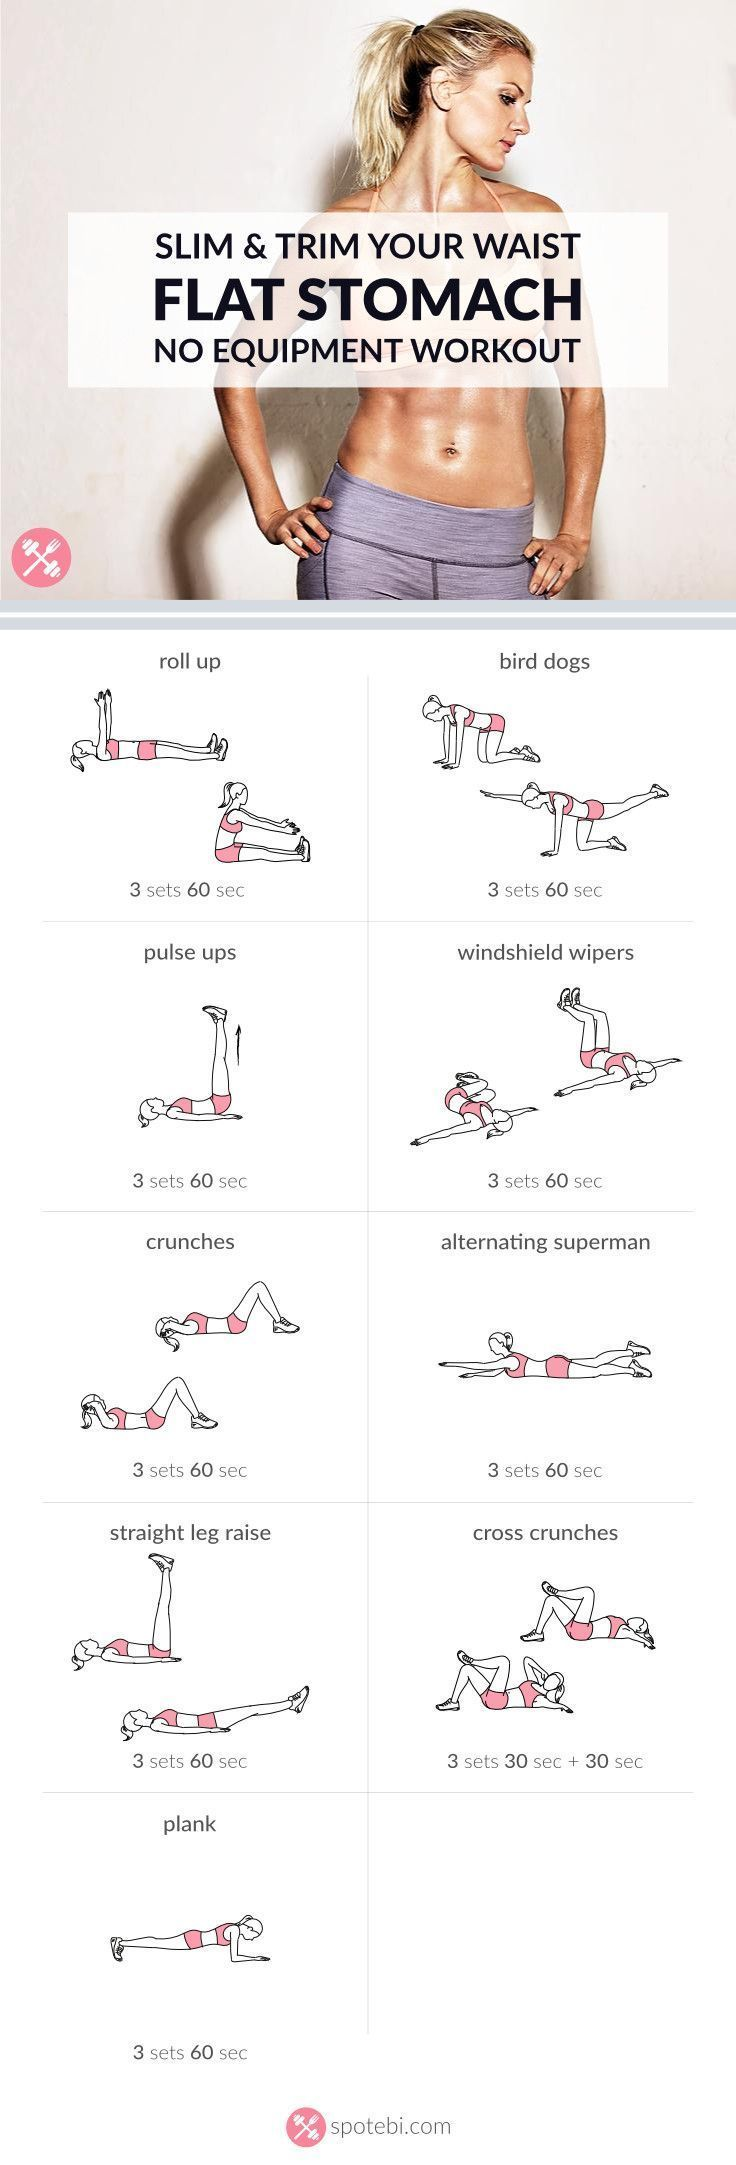 Below are 9 amazing and different ab workouts that you can use to target different areas of your core, so you can mix and match your workouts and keep them fun